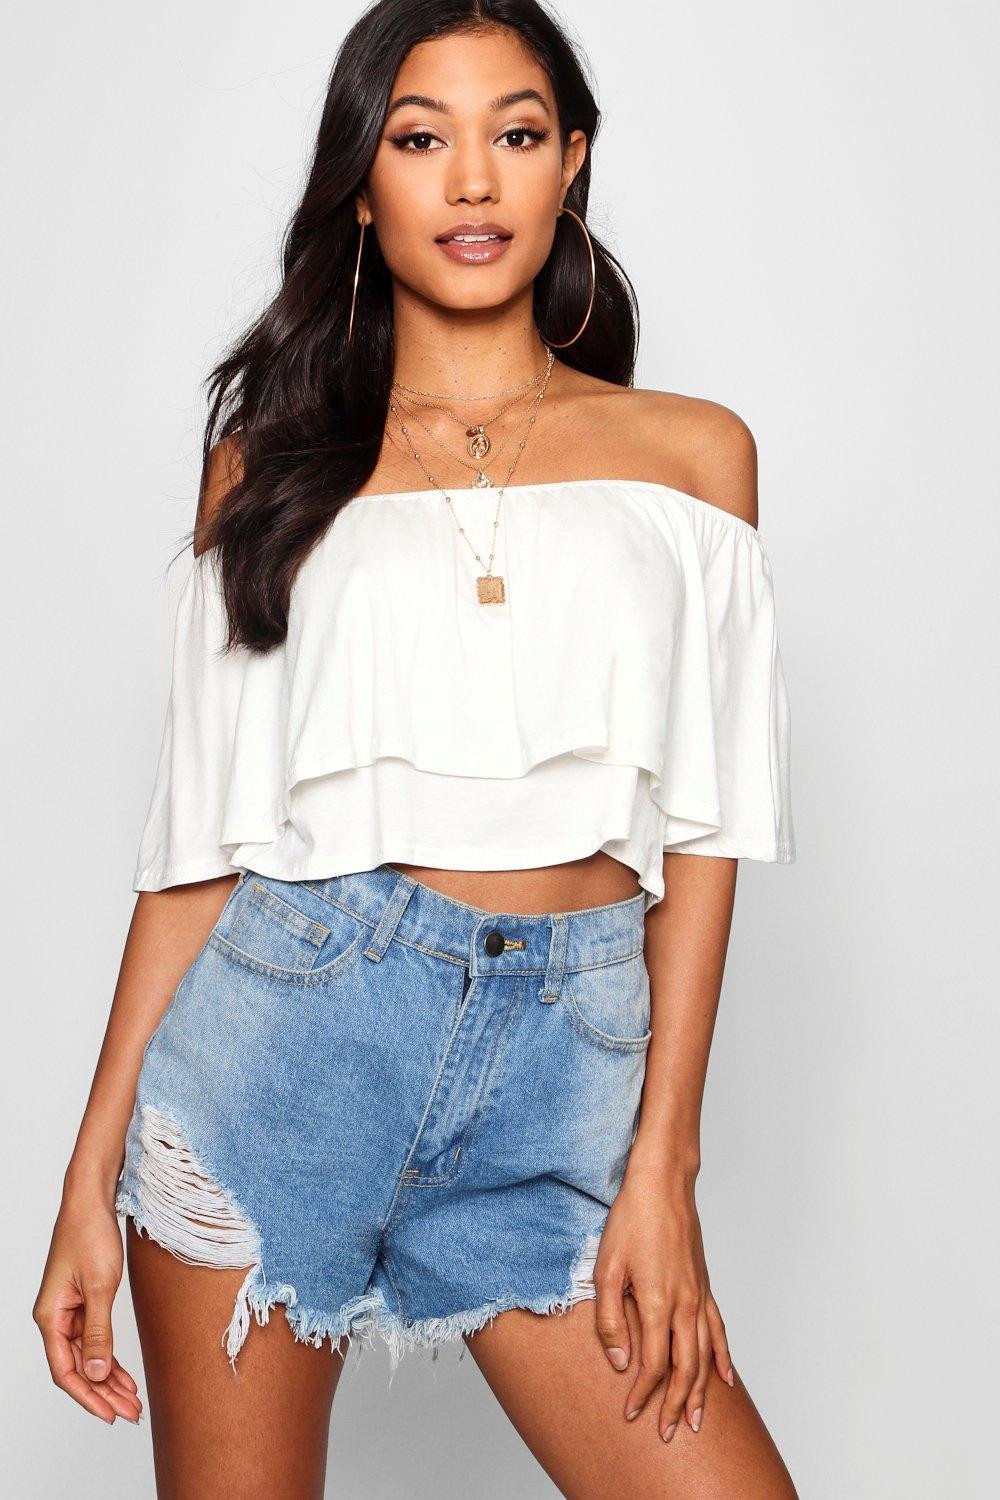 distrib-wq9rfuqq.tk Alya Off-The-Shoulder Corset Top $ + 2 colors Online Only. New Colors Available. Quick Shop Tops. All the best women's tops are right here at Urban Outfitters. Shop UO for sheer mesh tops and women's cropped tops or oversized vintage graphic tees and Champion hoodies for women. Want to get even cozier?